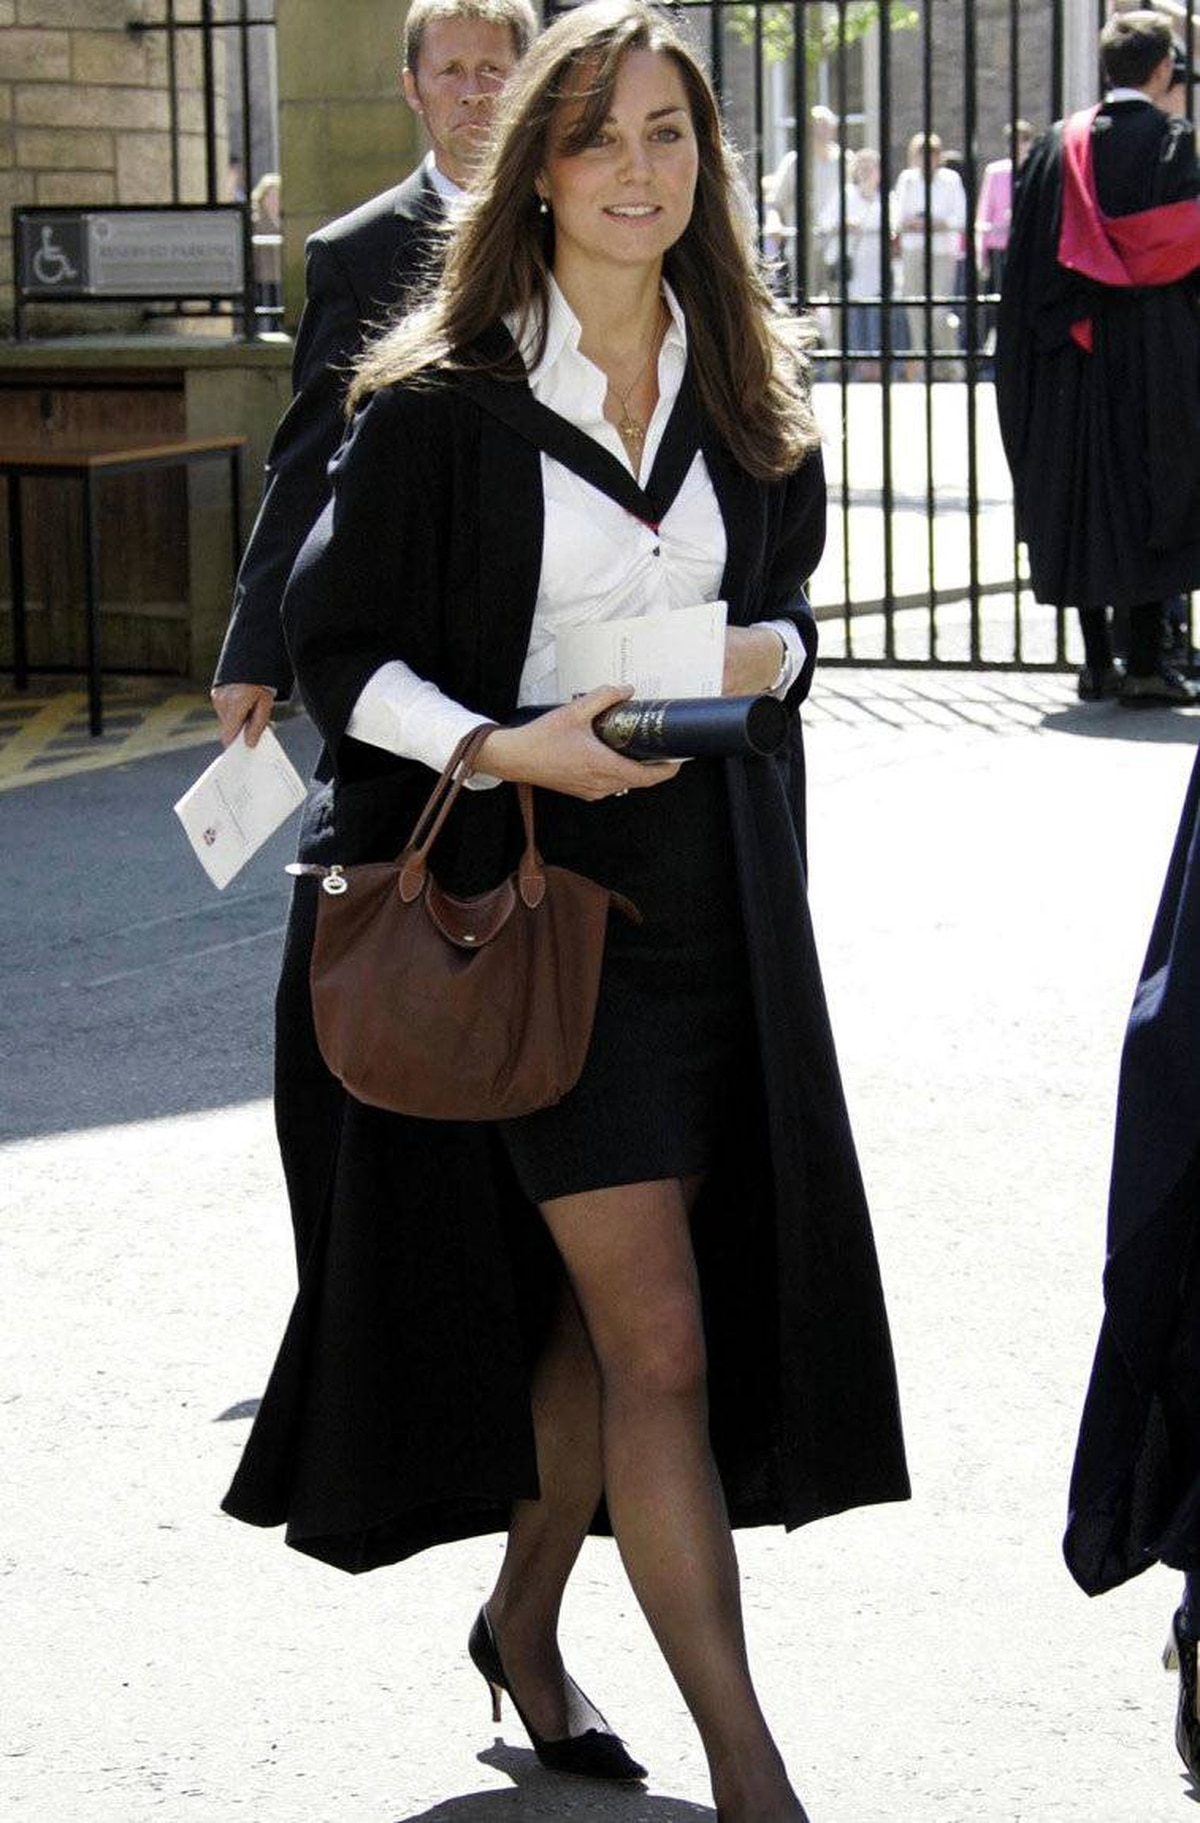 Kate Middleton leaves after attending her university graduation ceremony at St. Andrews University in St. Andrews, Scotland, June 23, 2005. Prince William, received a 2:1 grade for his four-year master of arts degree in geography at the university. Middleton graduated in the same ceremony.